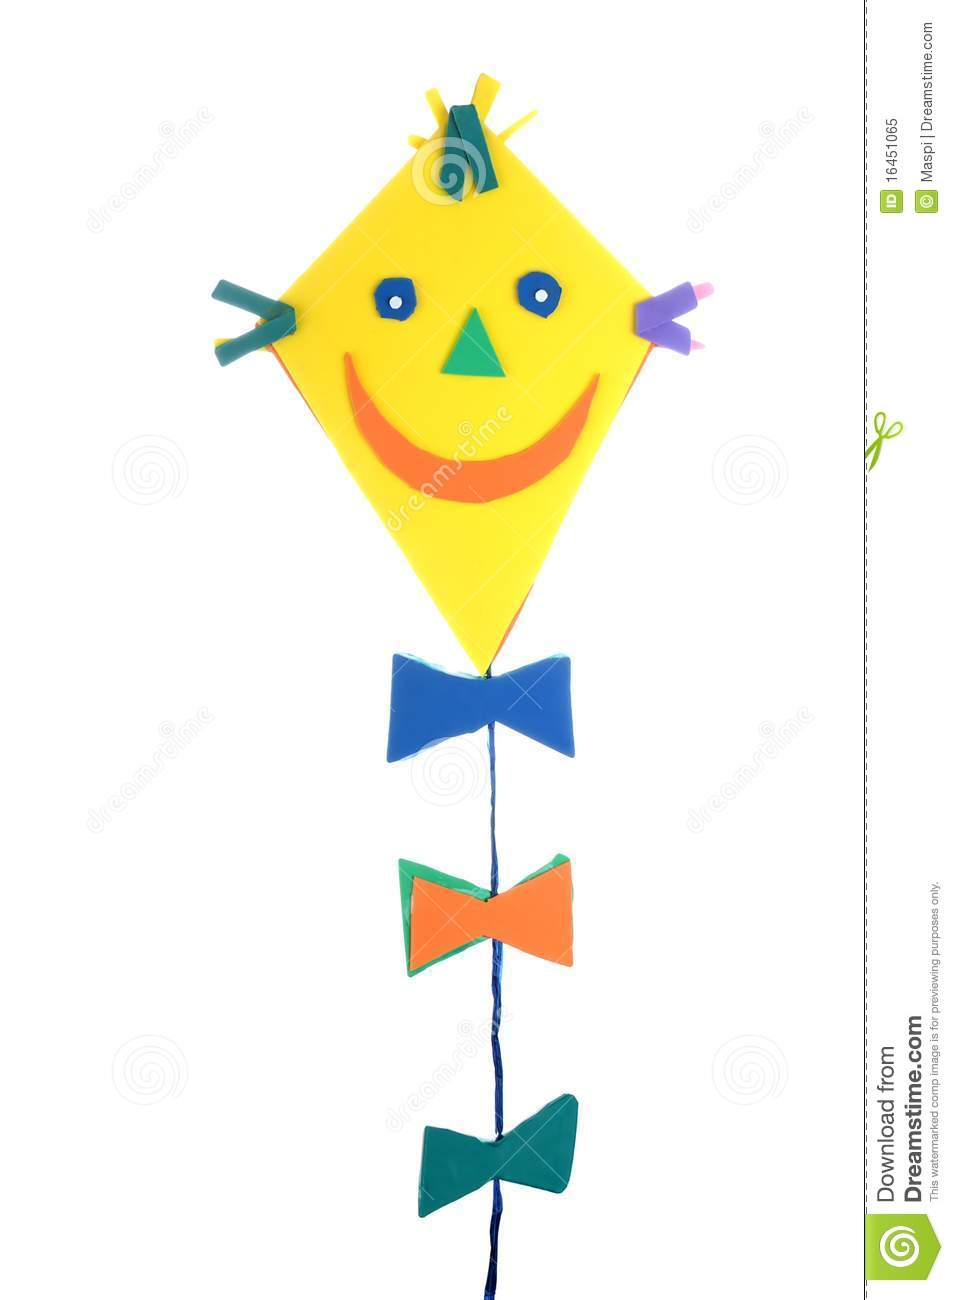 Decoration Image Of Kite Decoration Stock Image Image Of Smile Decoration 16451065